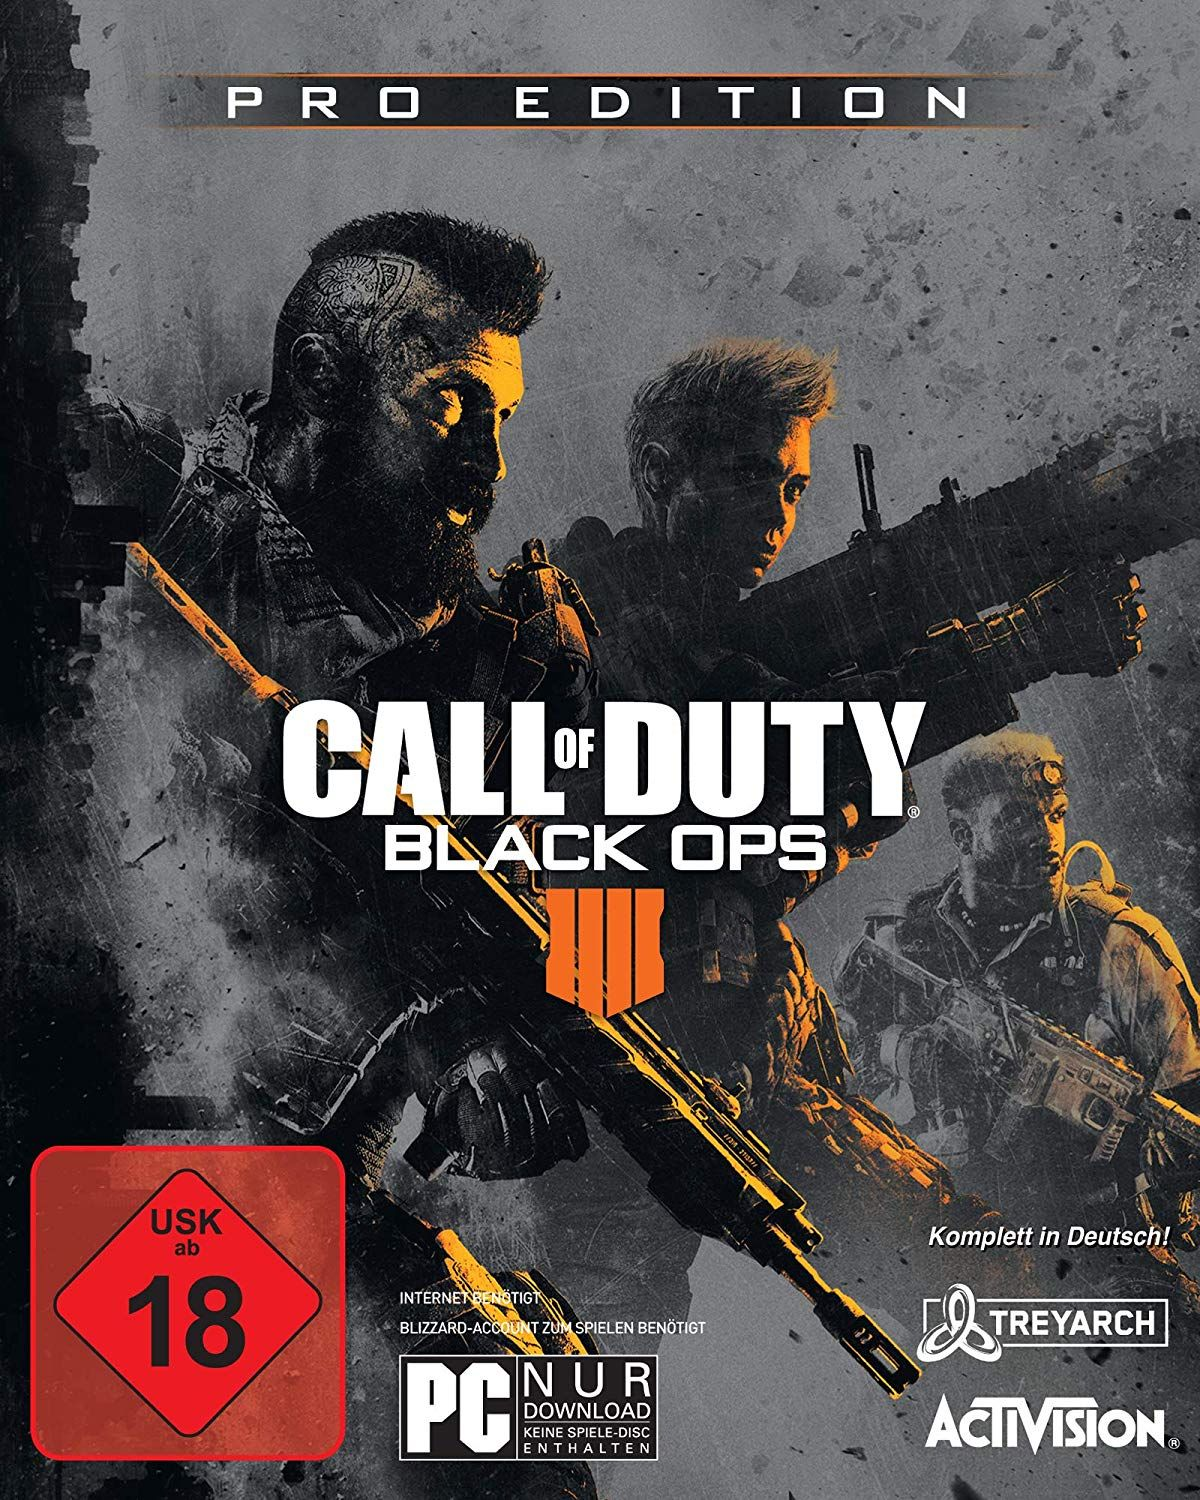 Call of Duty: Black Ops IIII - Pro Edition